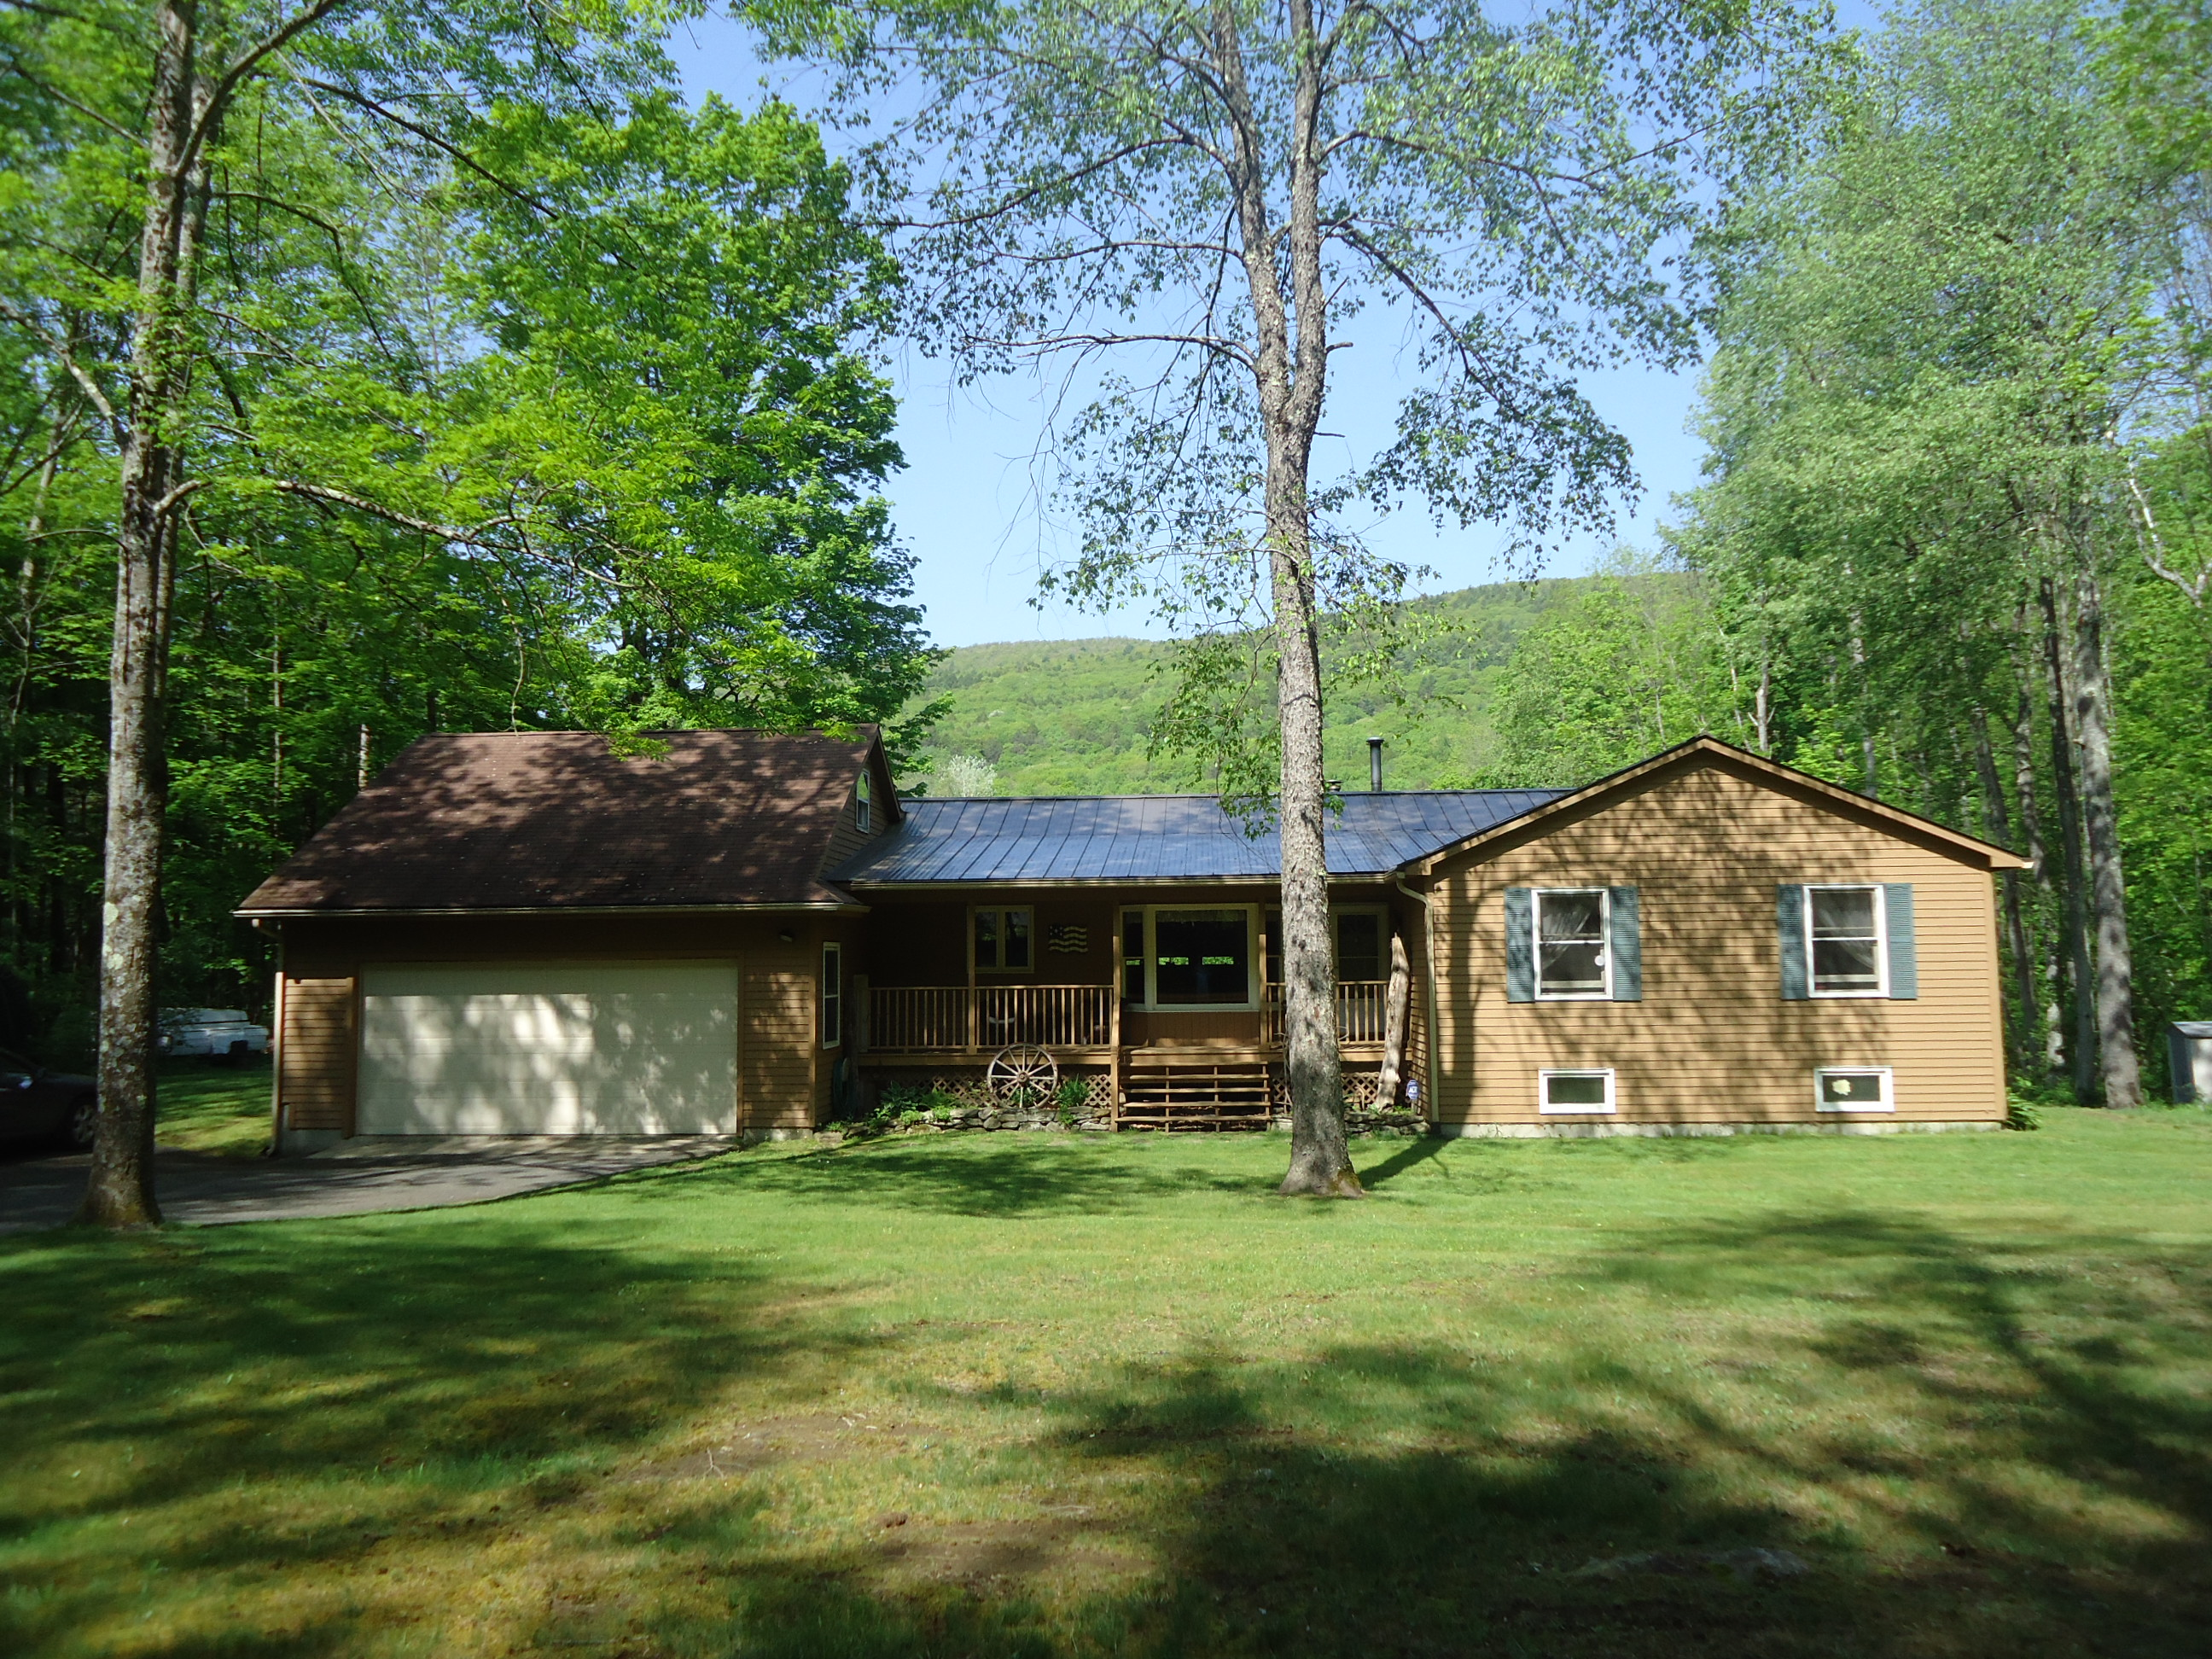 Maison unifamiliale pour l Vente à Single level living on 4.5 acres with views of Tom Ball Mountain 272 Great Barrington Rd West Stockbridge, Massachusetts 01266 États-Unis